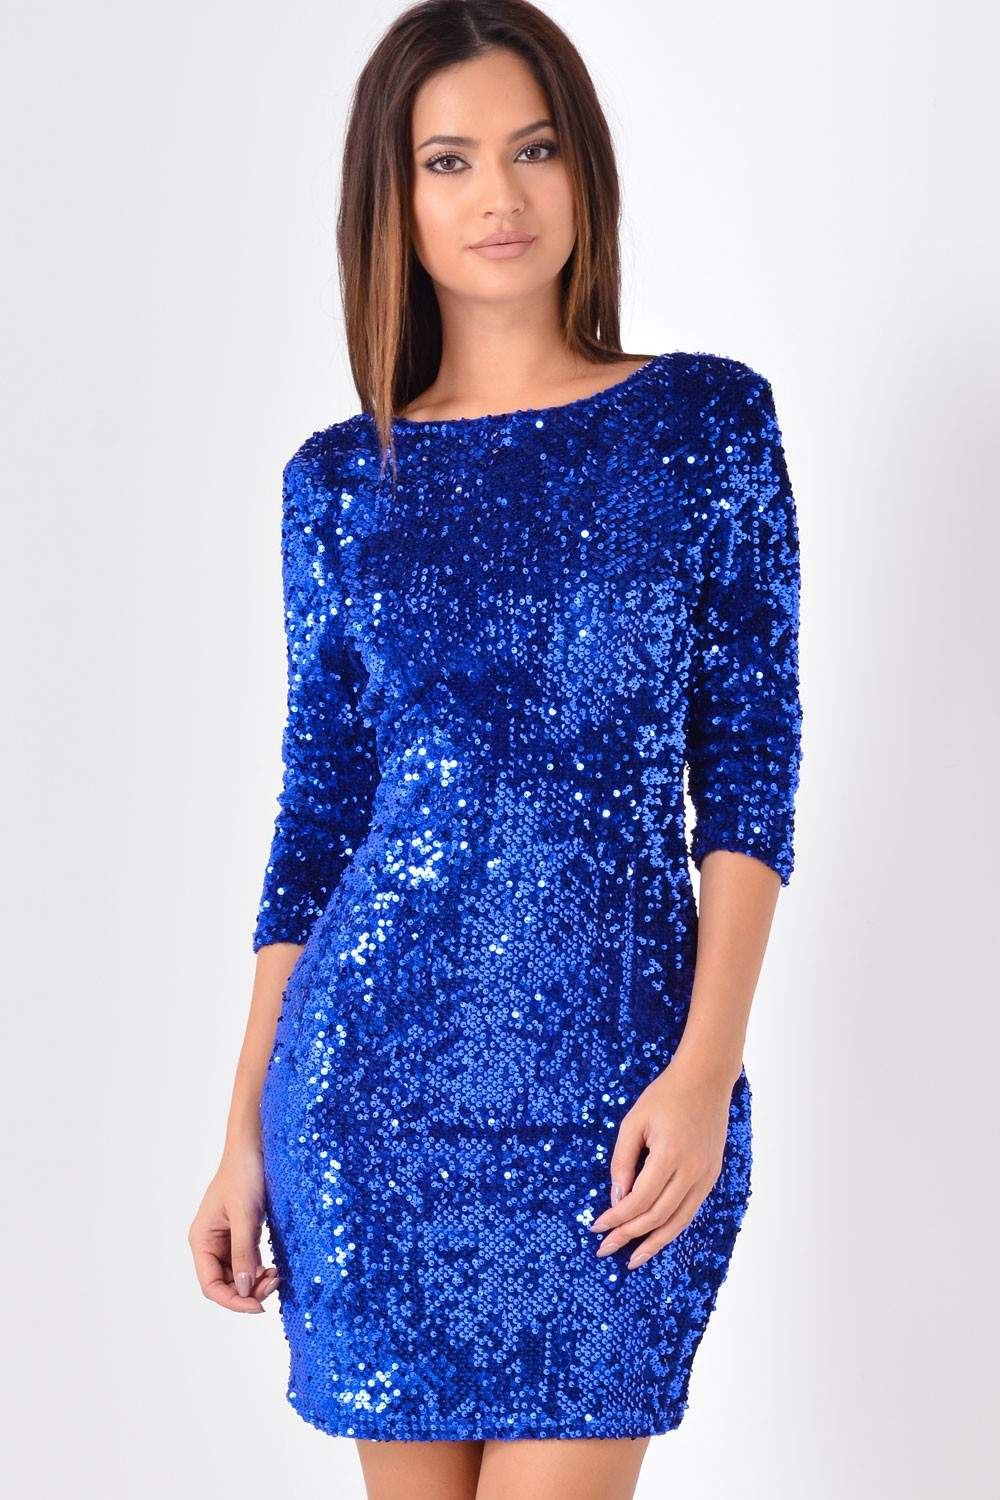 Marc Angelo Alison Sequin Bodycon dress in Royal Blue ...